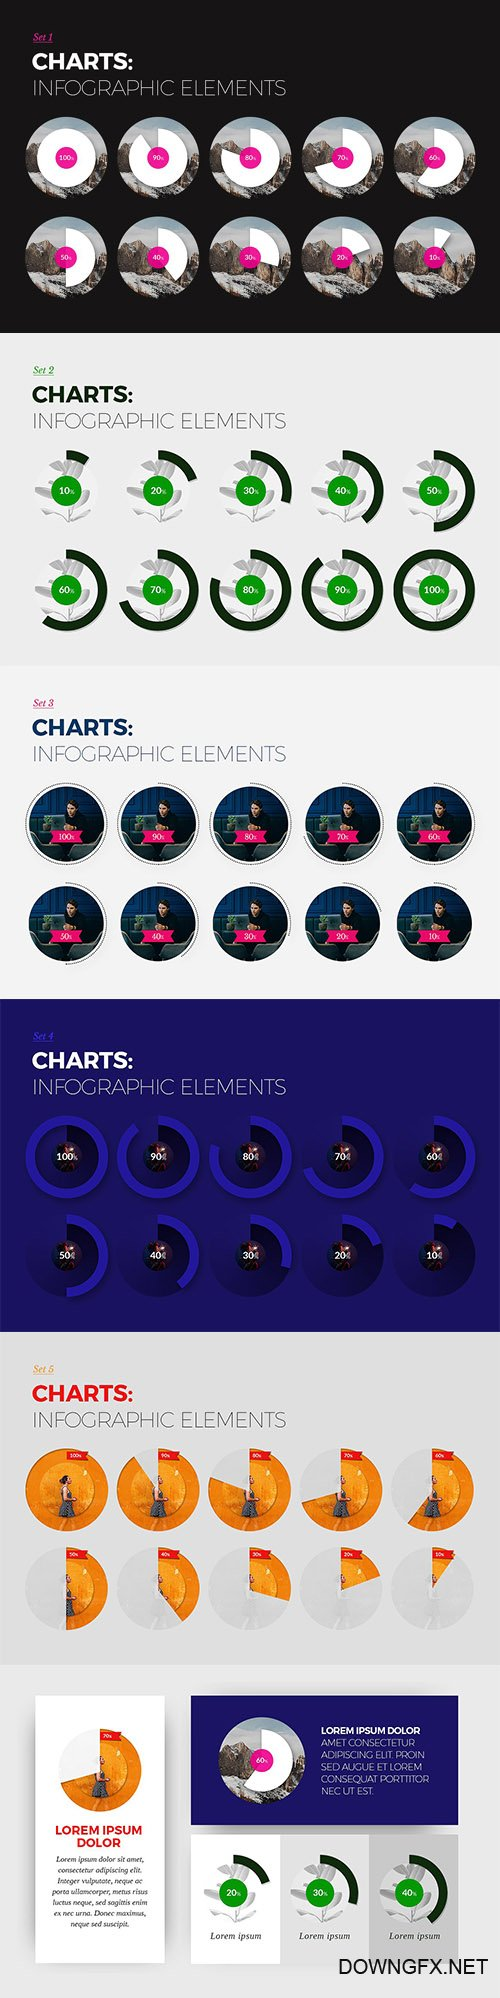 Charts sets - Infographic elements - CM 1965876